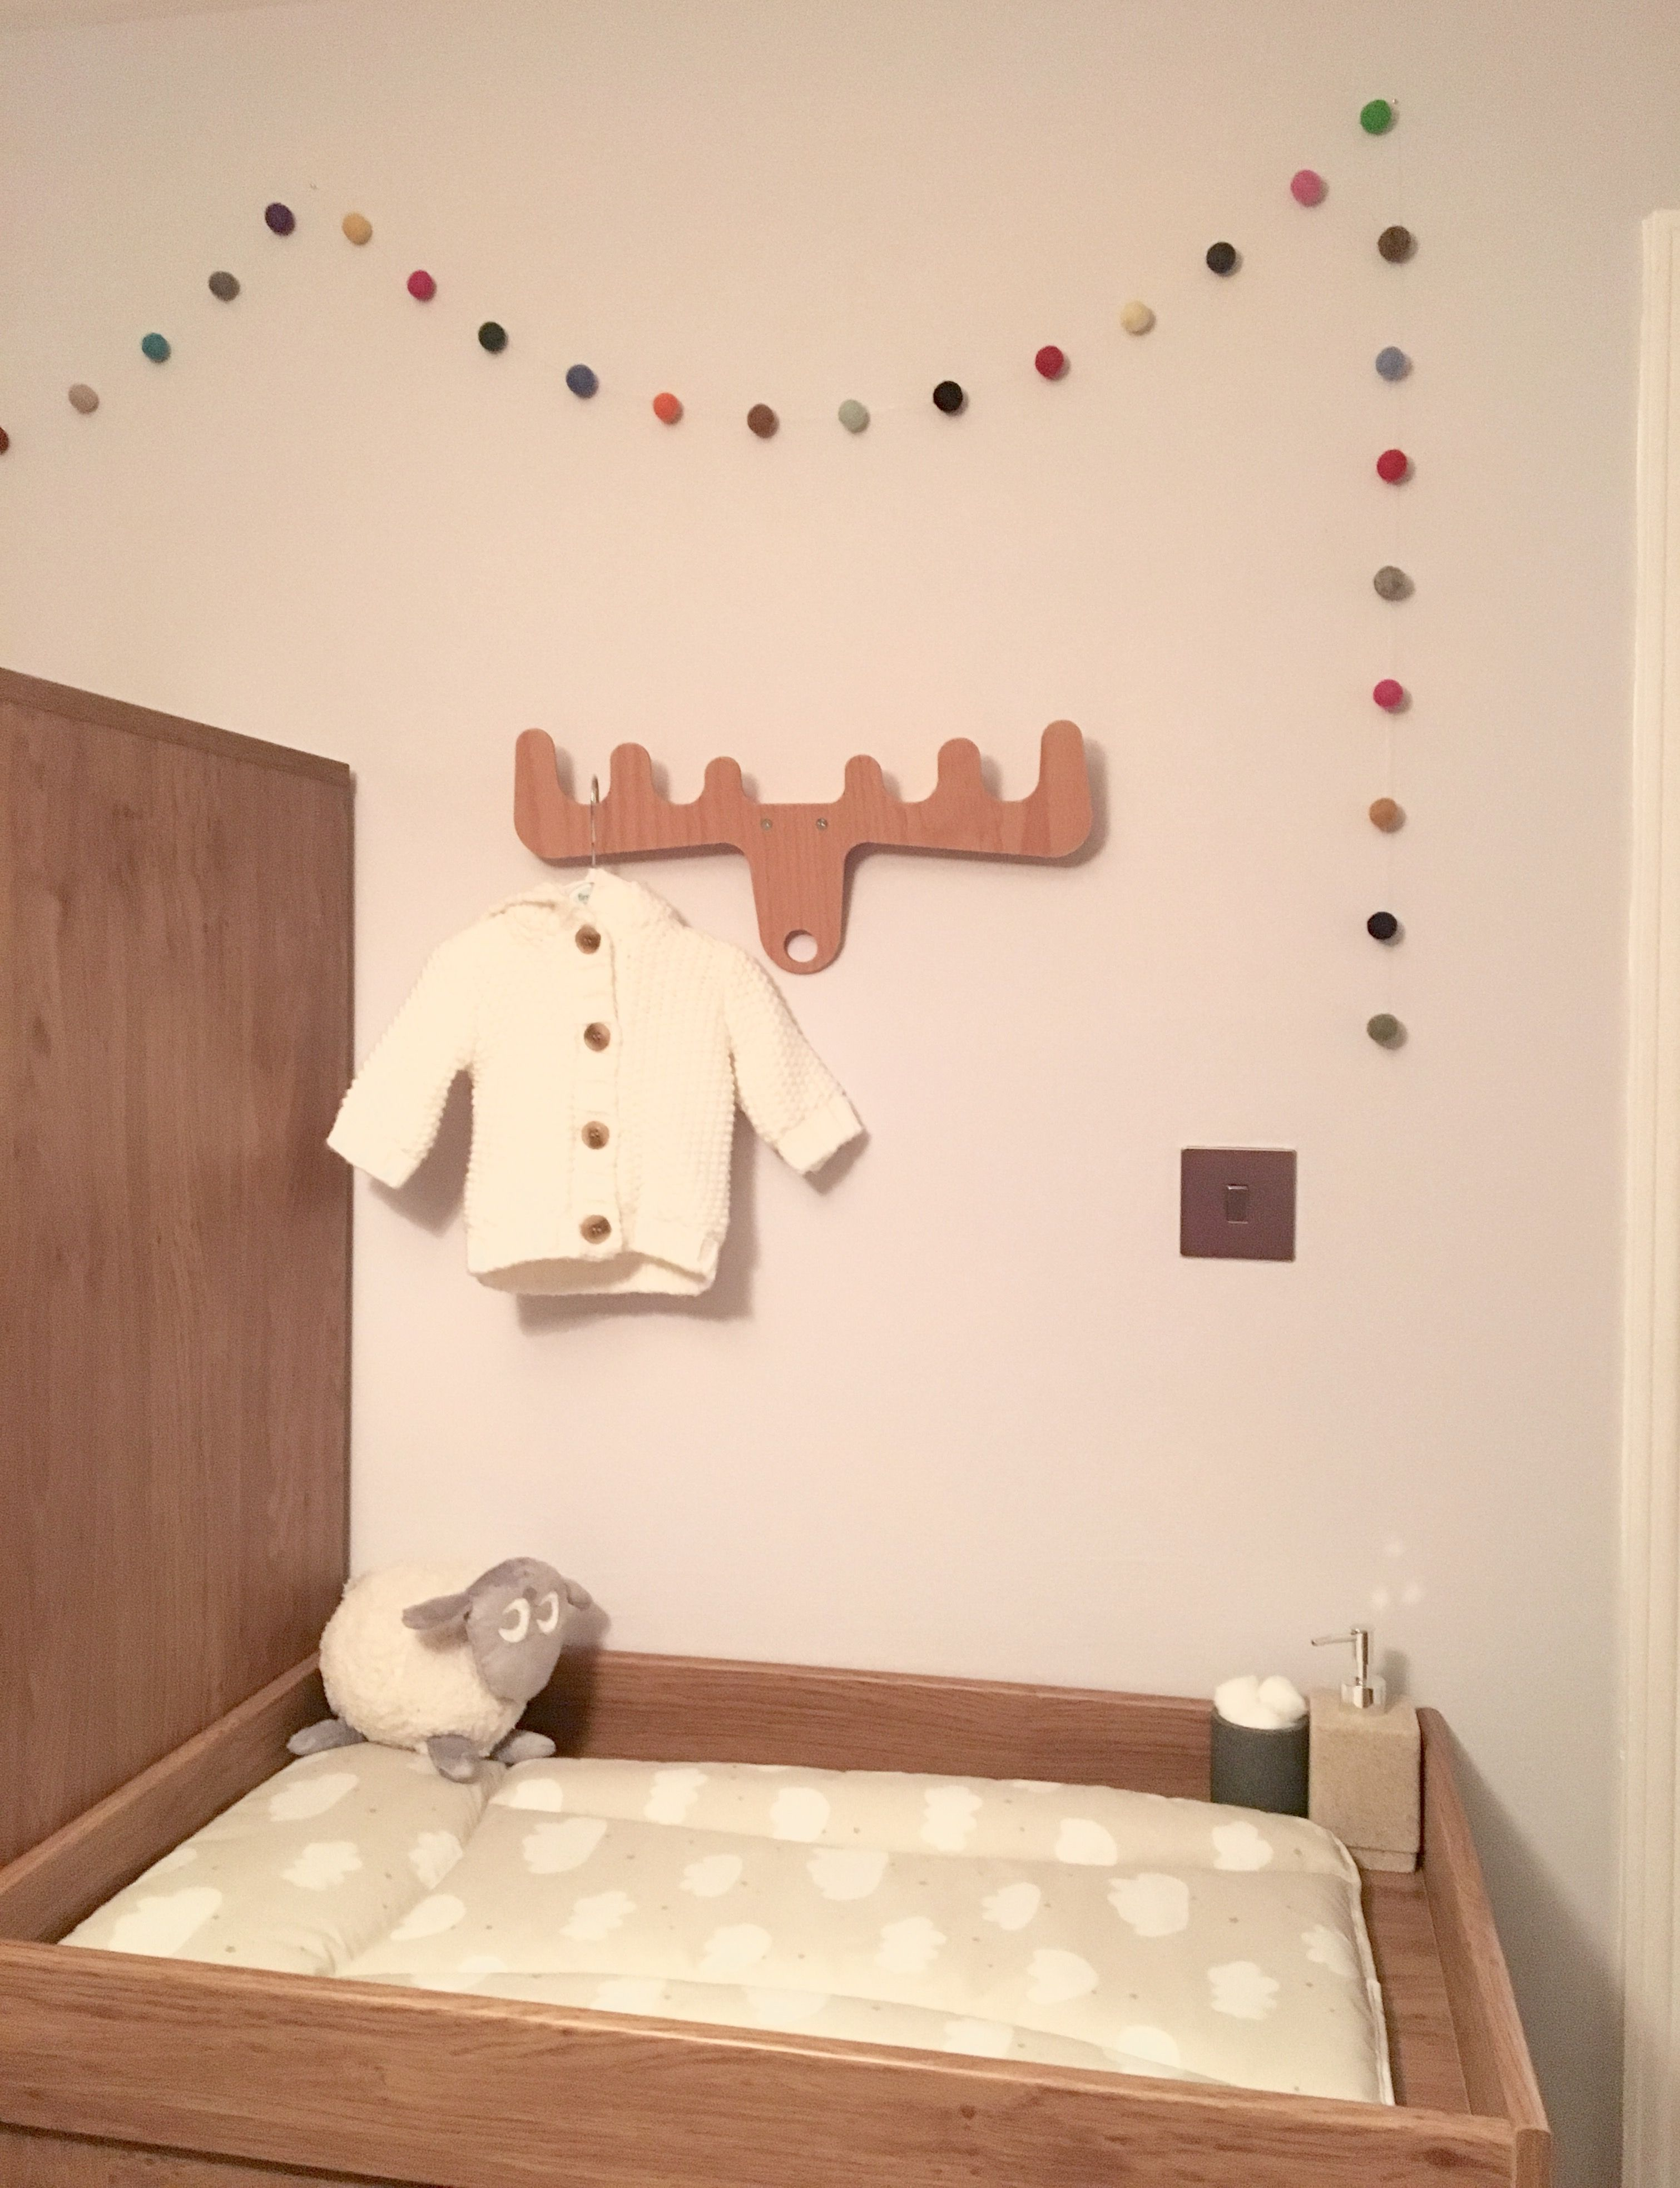 Attractive Moose On The Loose Wooden Coat Rack From Alavit Leeds. Sweet Dreams  Changing Mat From Great Ideas